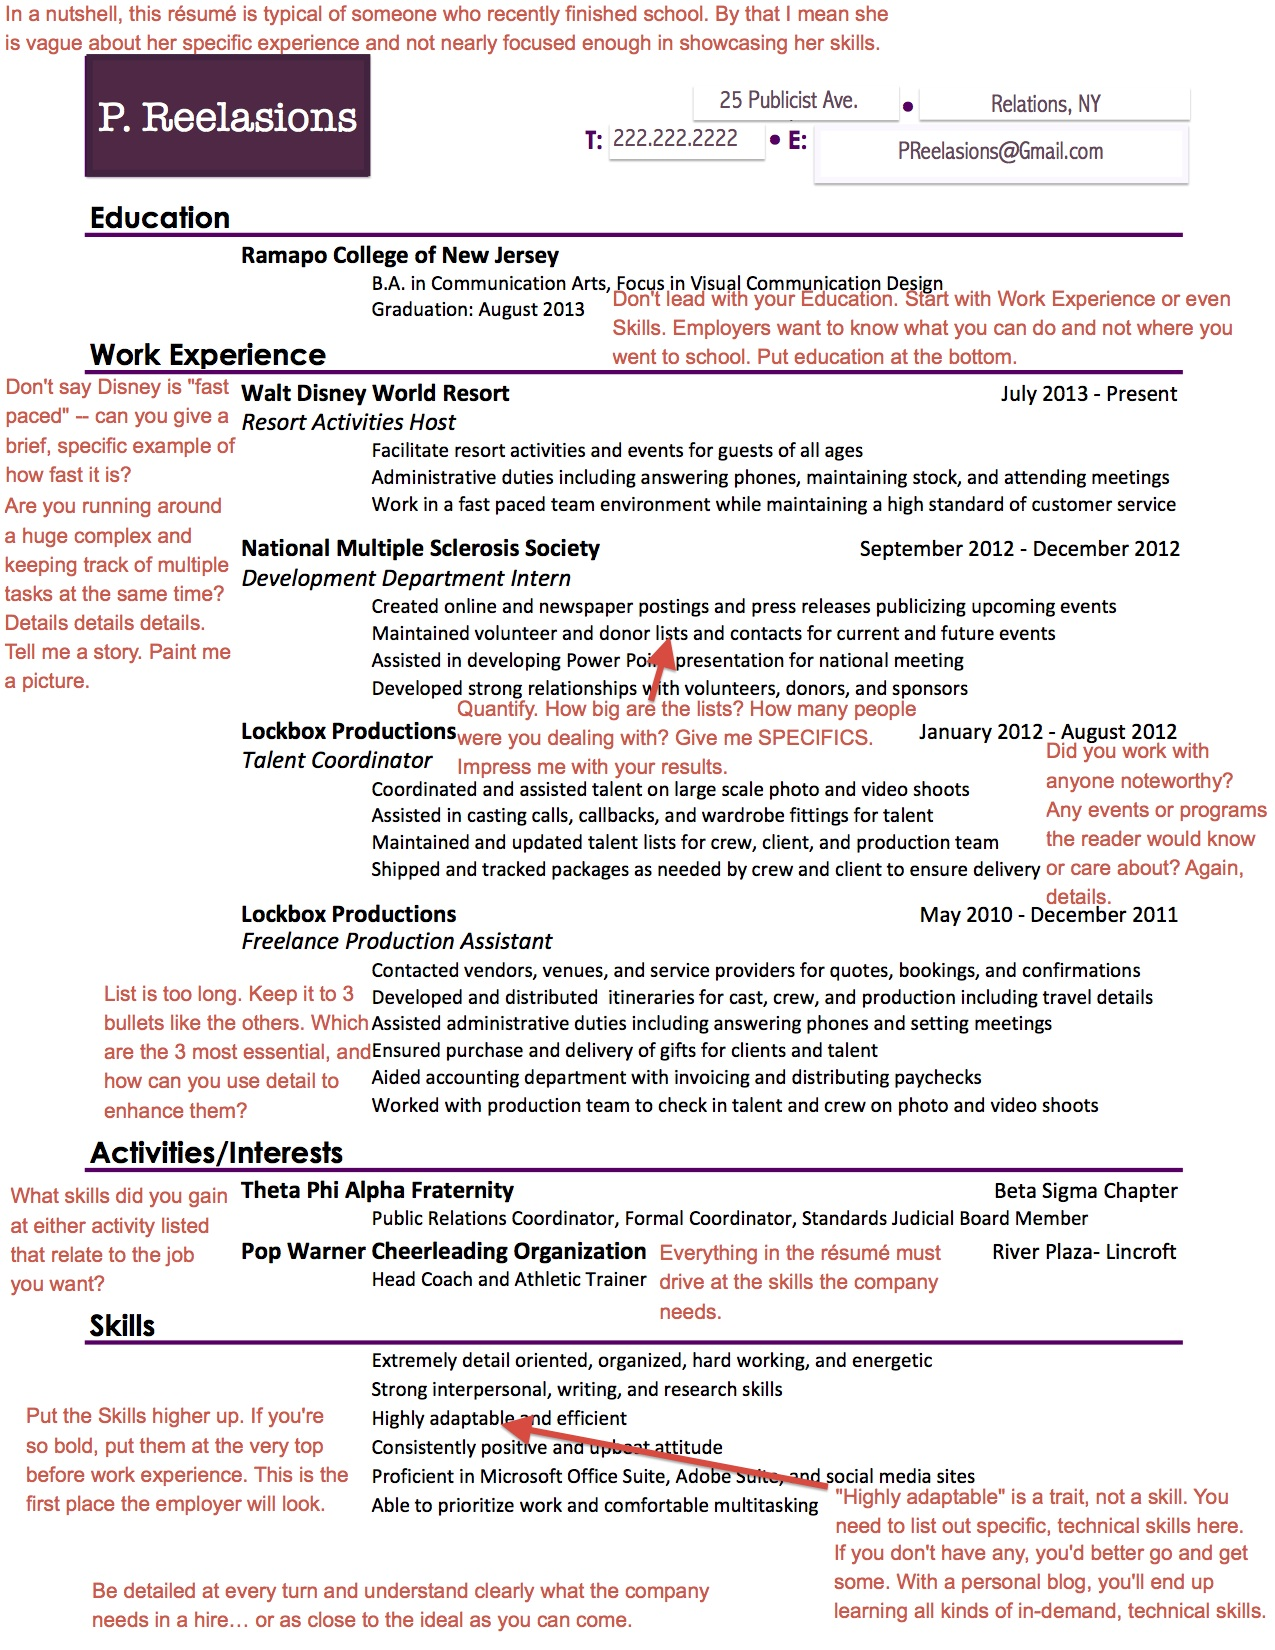 public affairs resume best public relations cover letter examples - Sample Public Relations Manager Resume